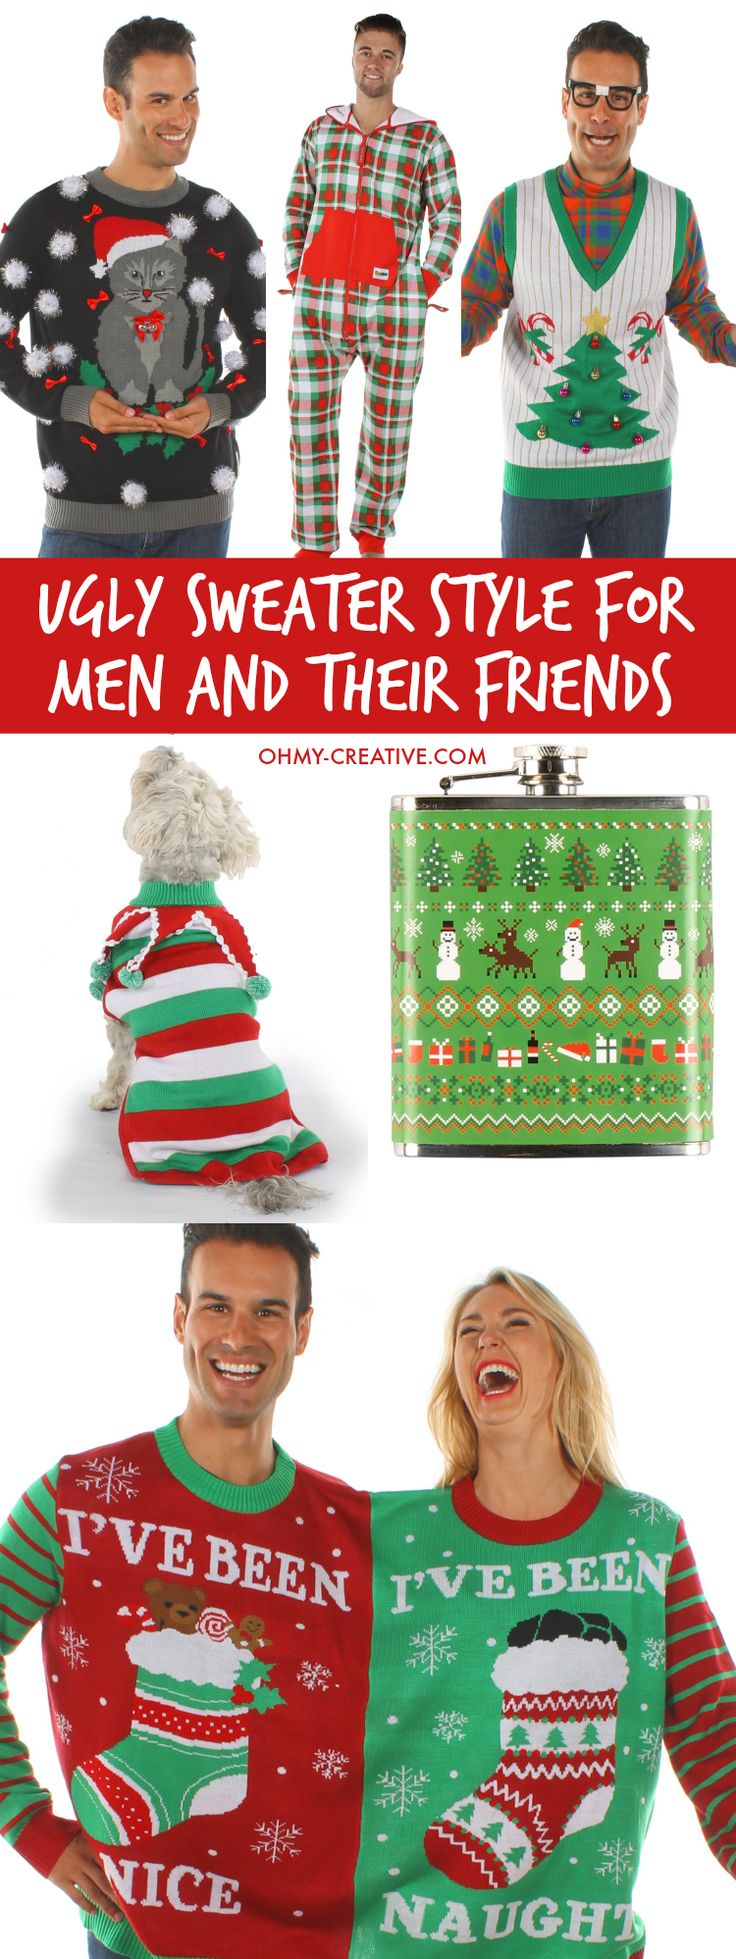 Ugly Christmas Sweater Style For Men And Their Friends! Be hot, hip and hilarious with these Ugly Christmas Sweater Party Looks from head to toe! Fun accessories too! | OHMY-CREATIVE.COM Ugly Sweaters | Ugly Sweater Party Ideas